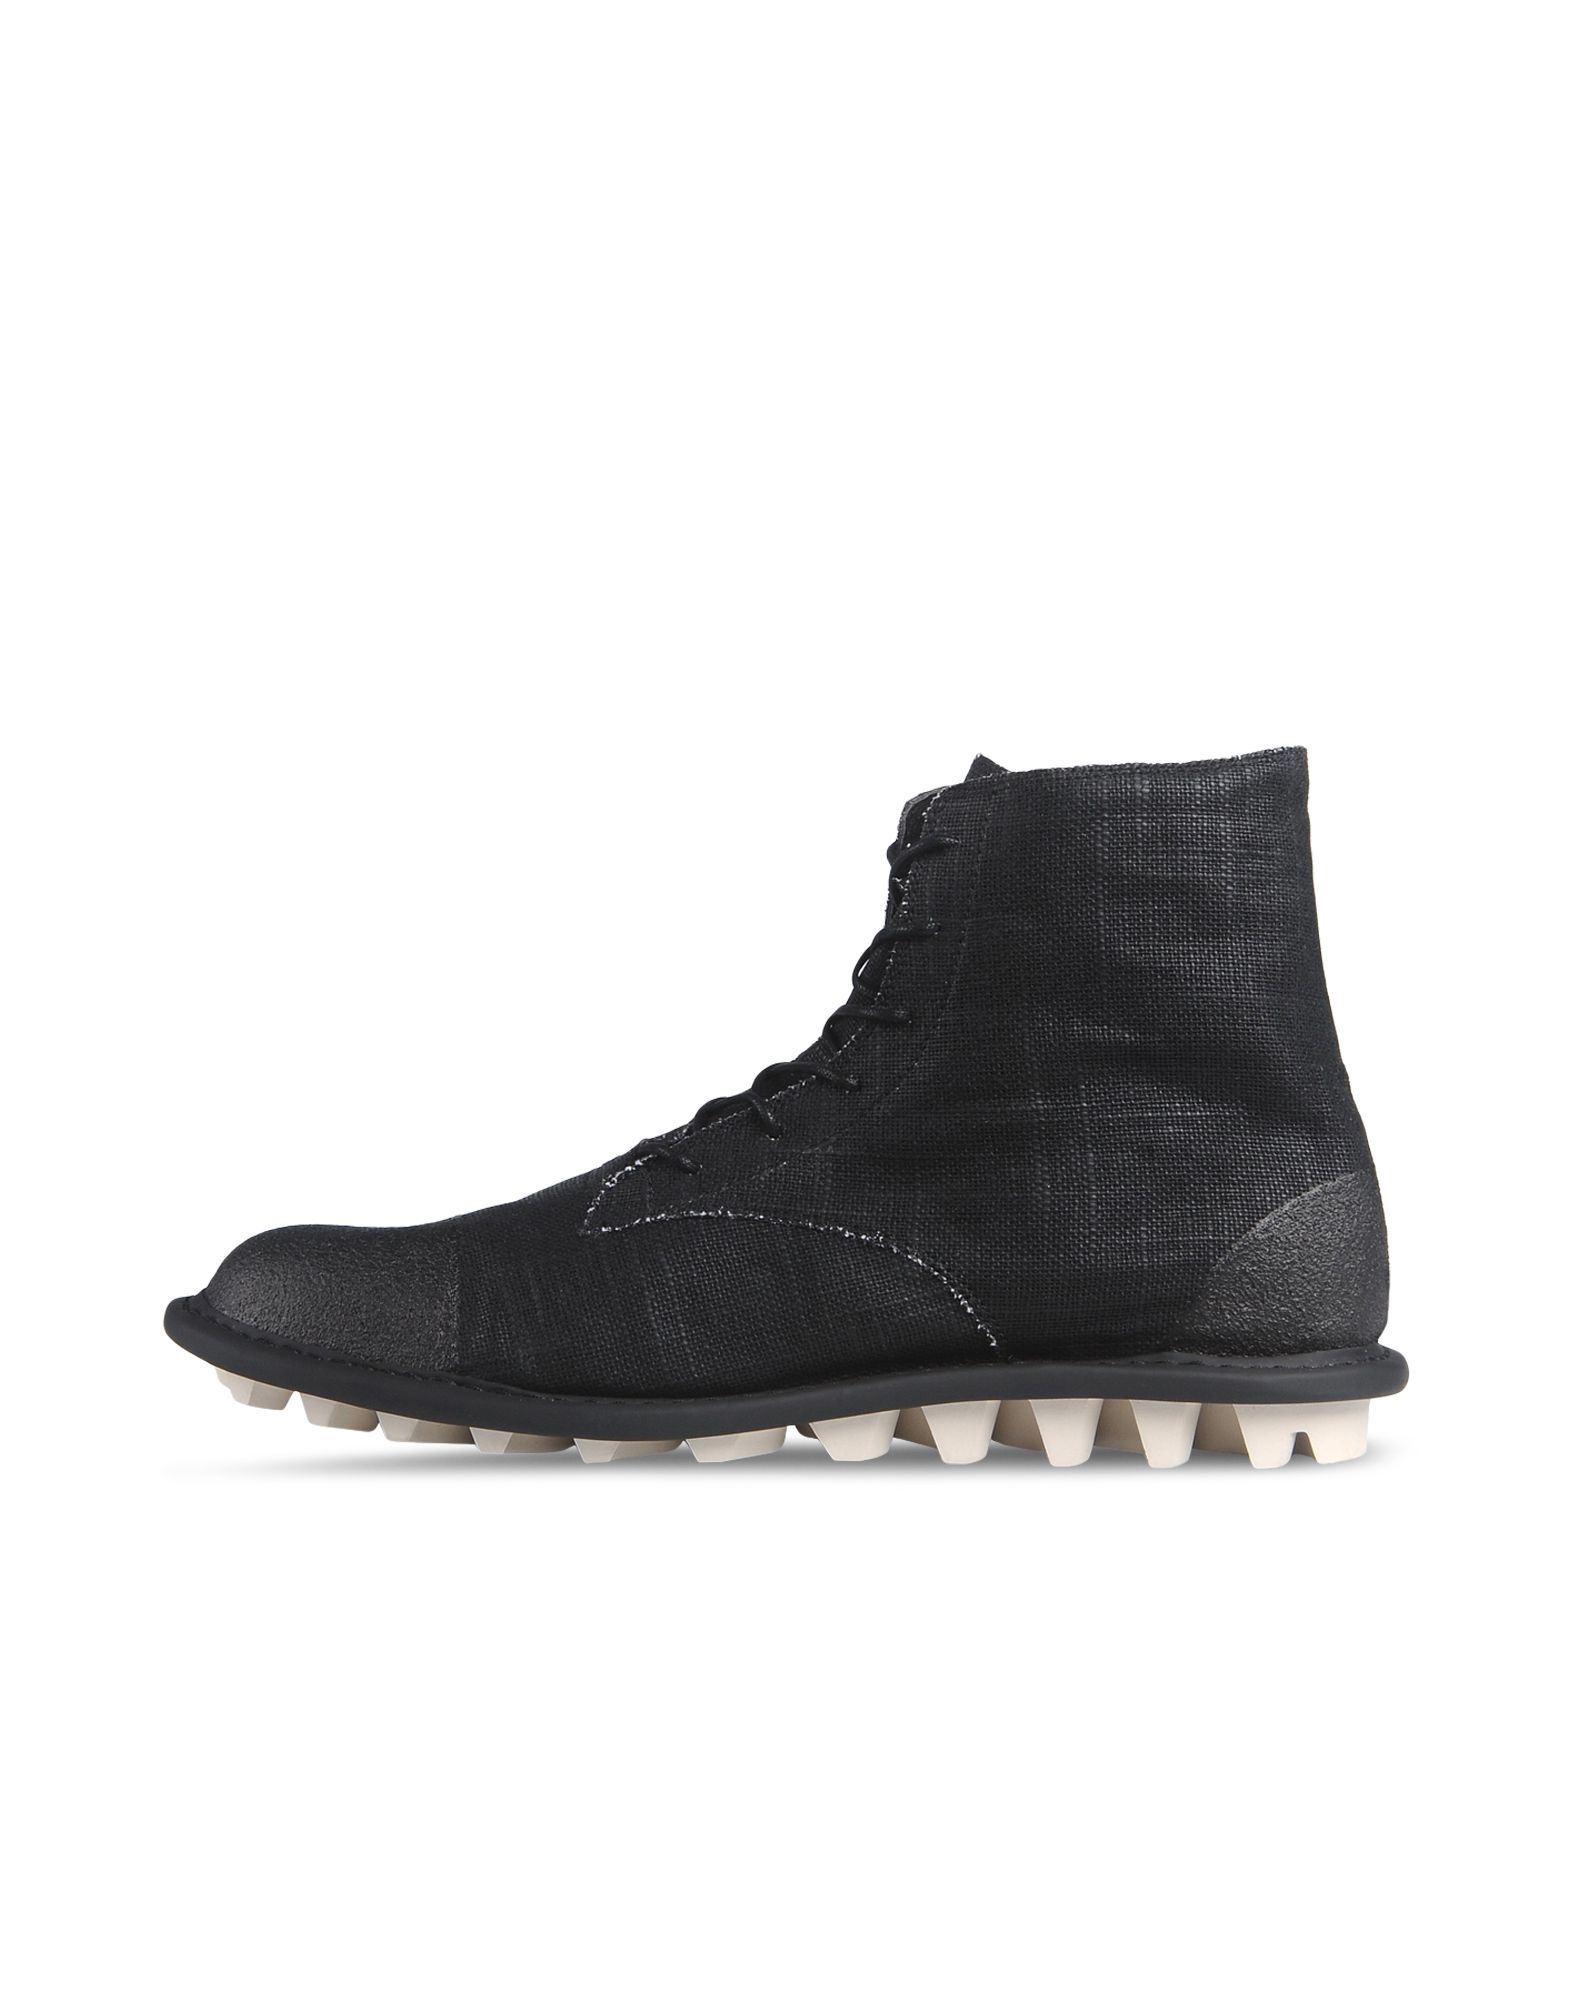 huge selection of 37701 d517a Tom Dixon for Adidas